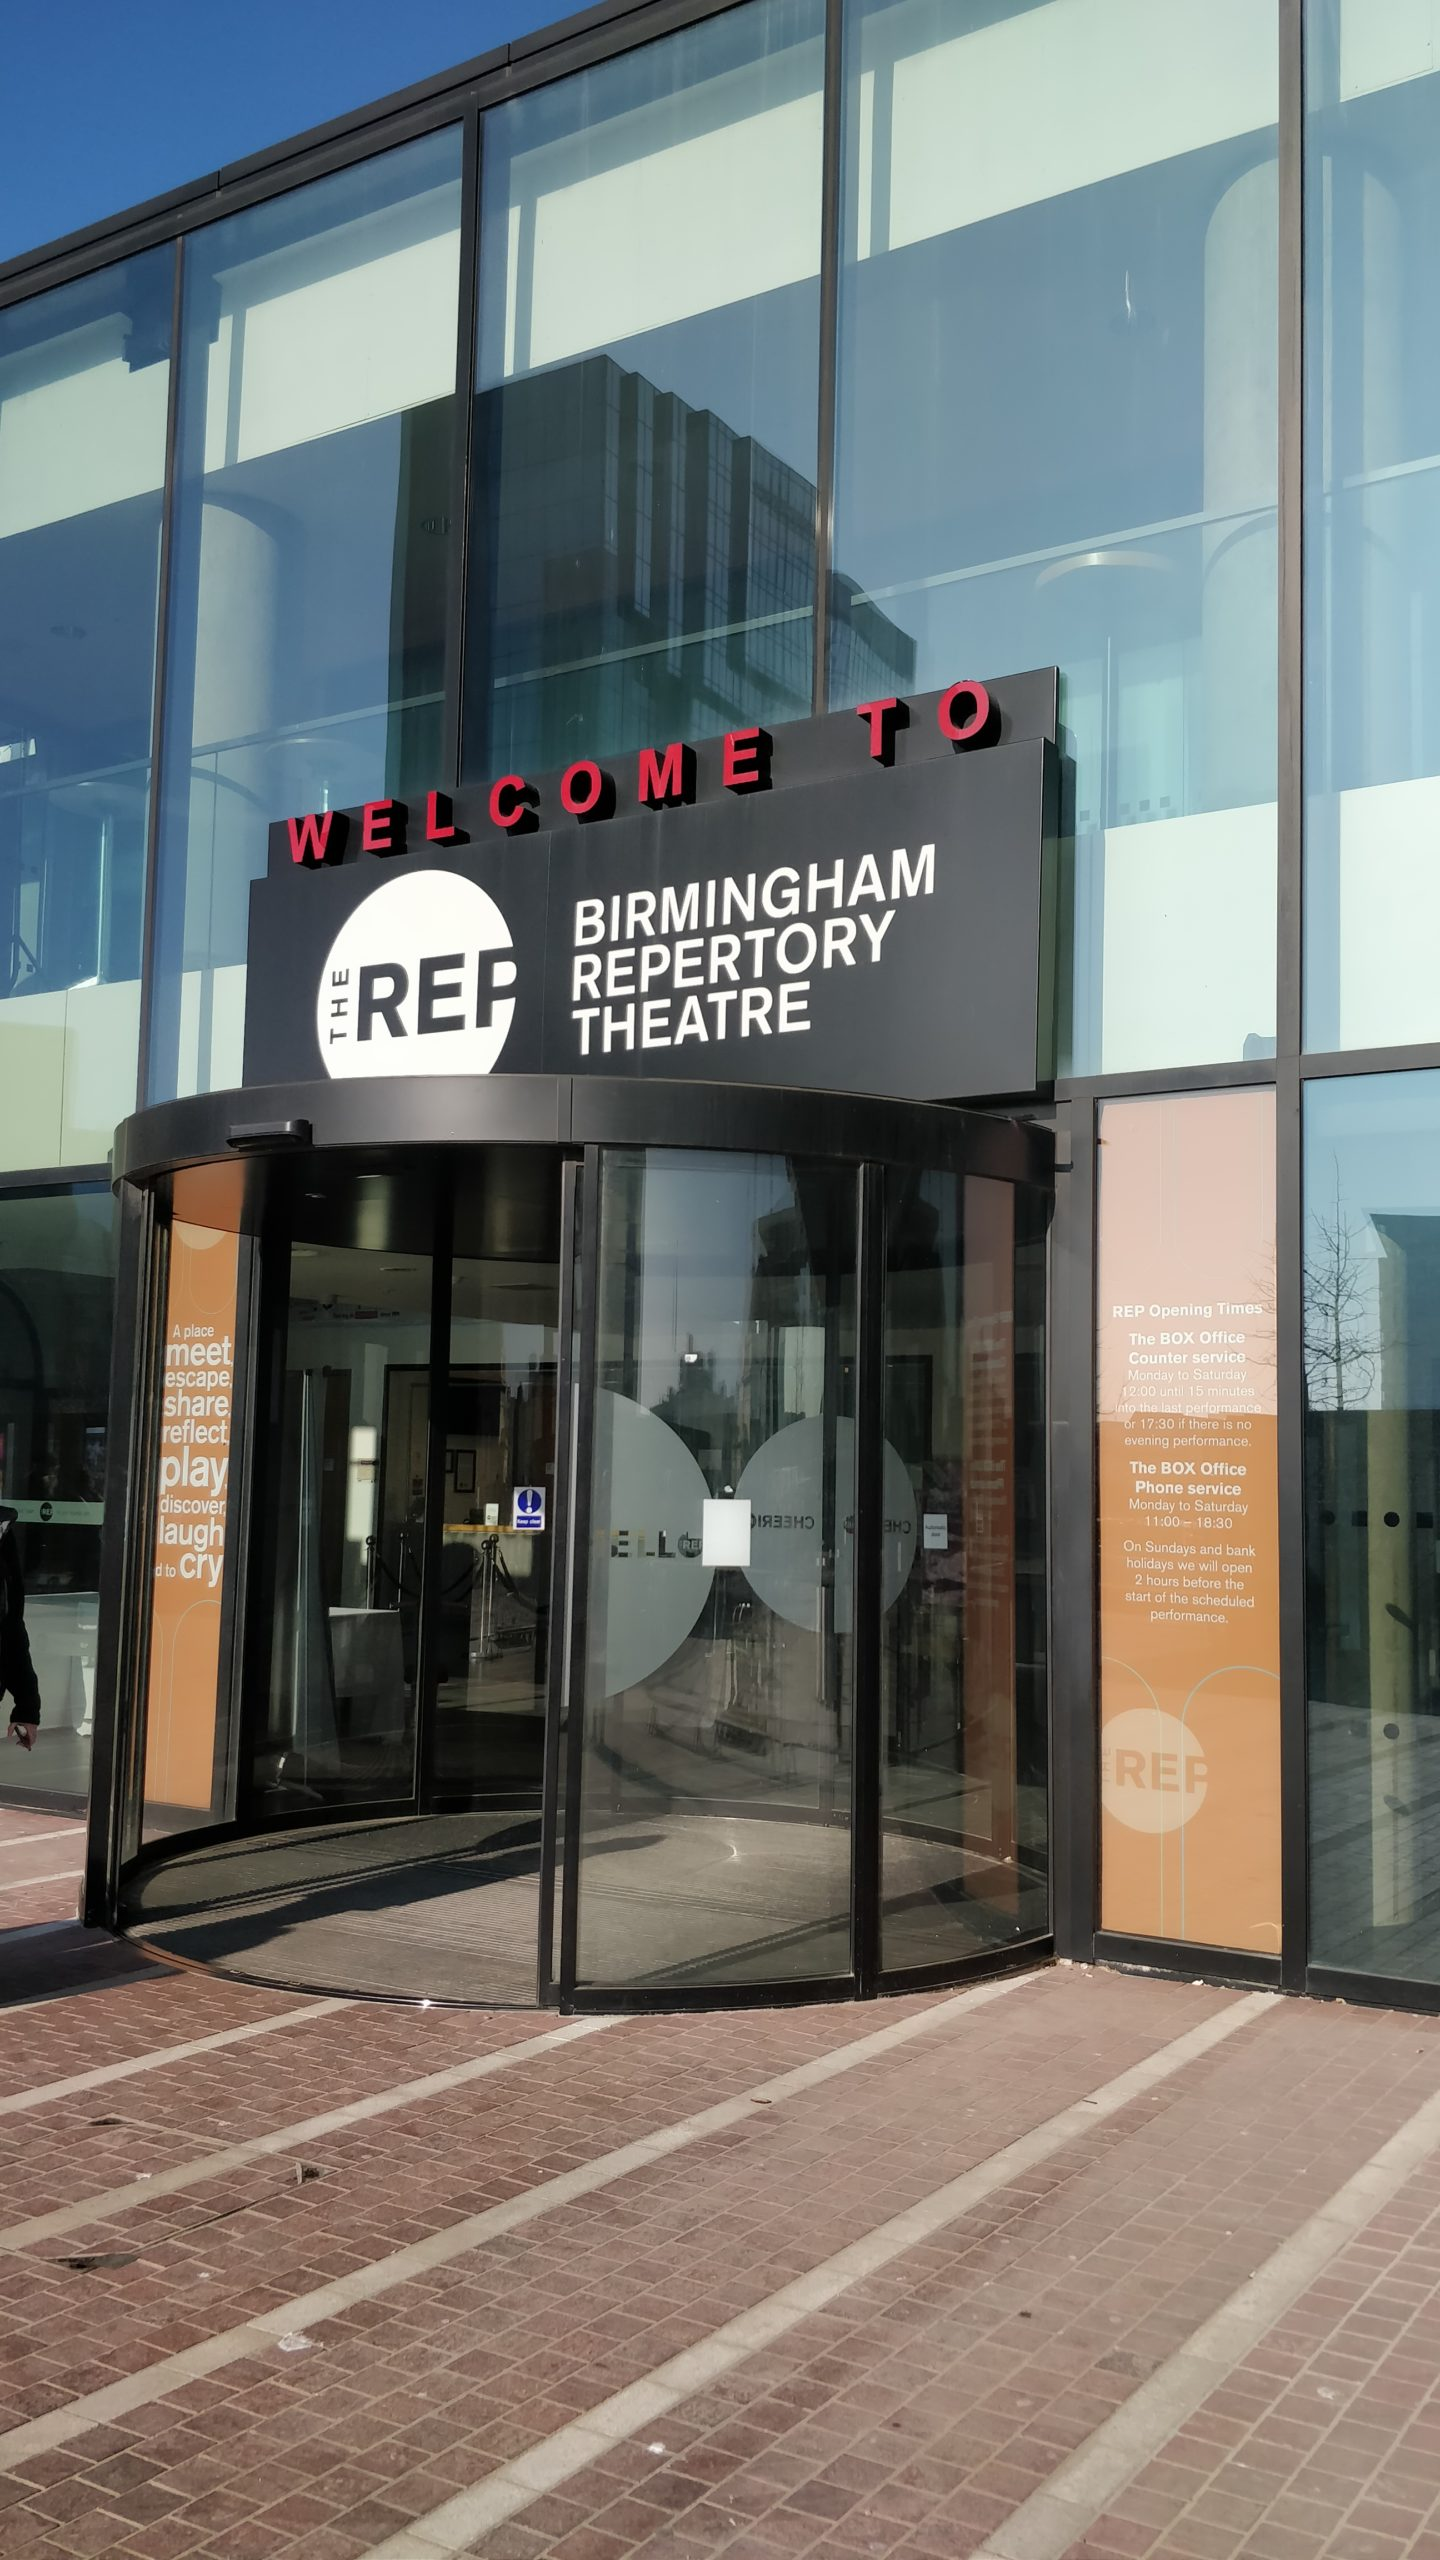 The outside doors of The Birmingham REP in Birmingham